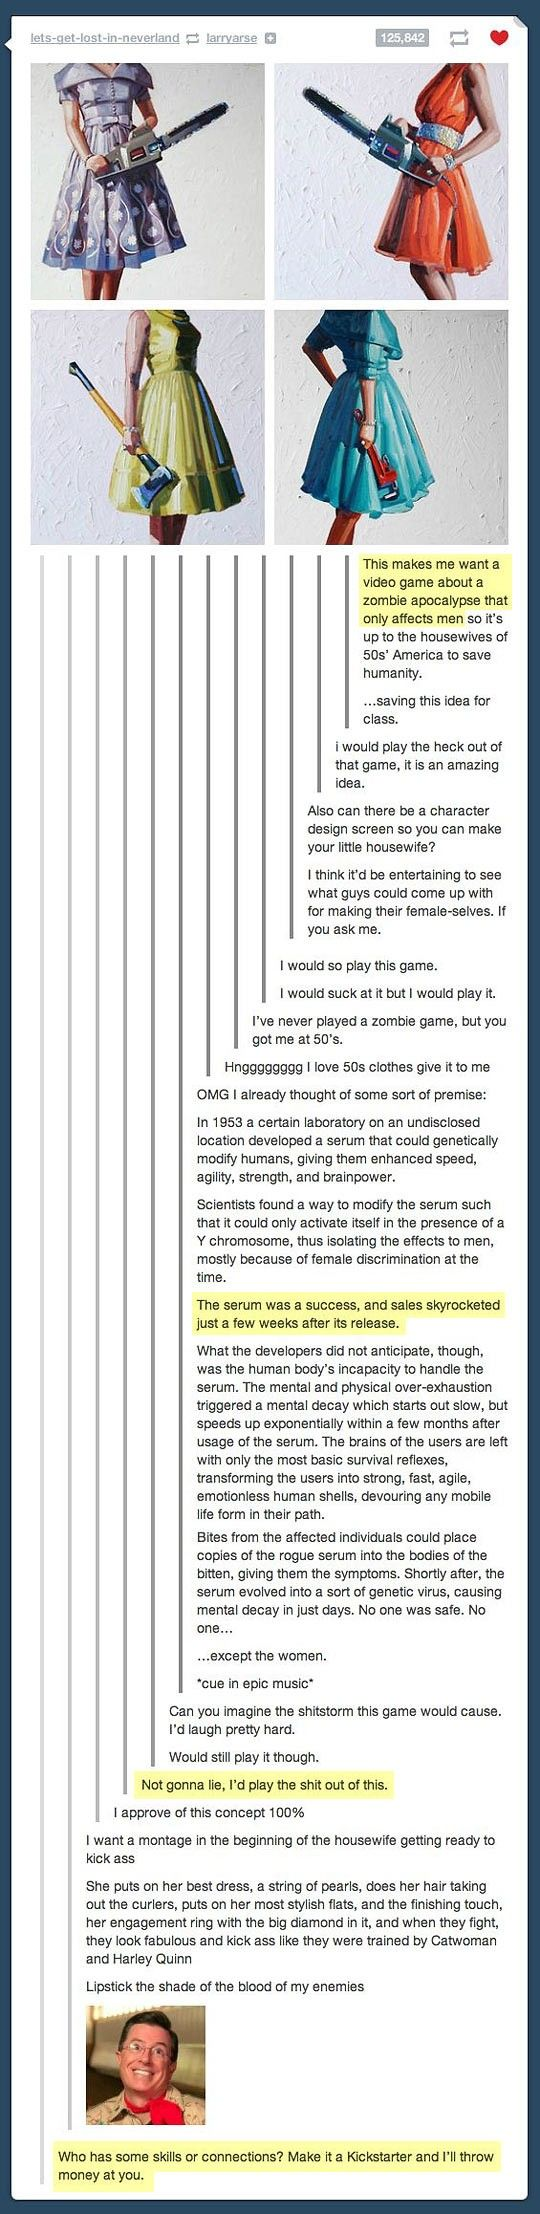 I would totally play this game…I HATE video games and zombies, but I'm behind this idea 100000000%.